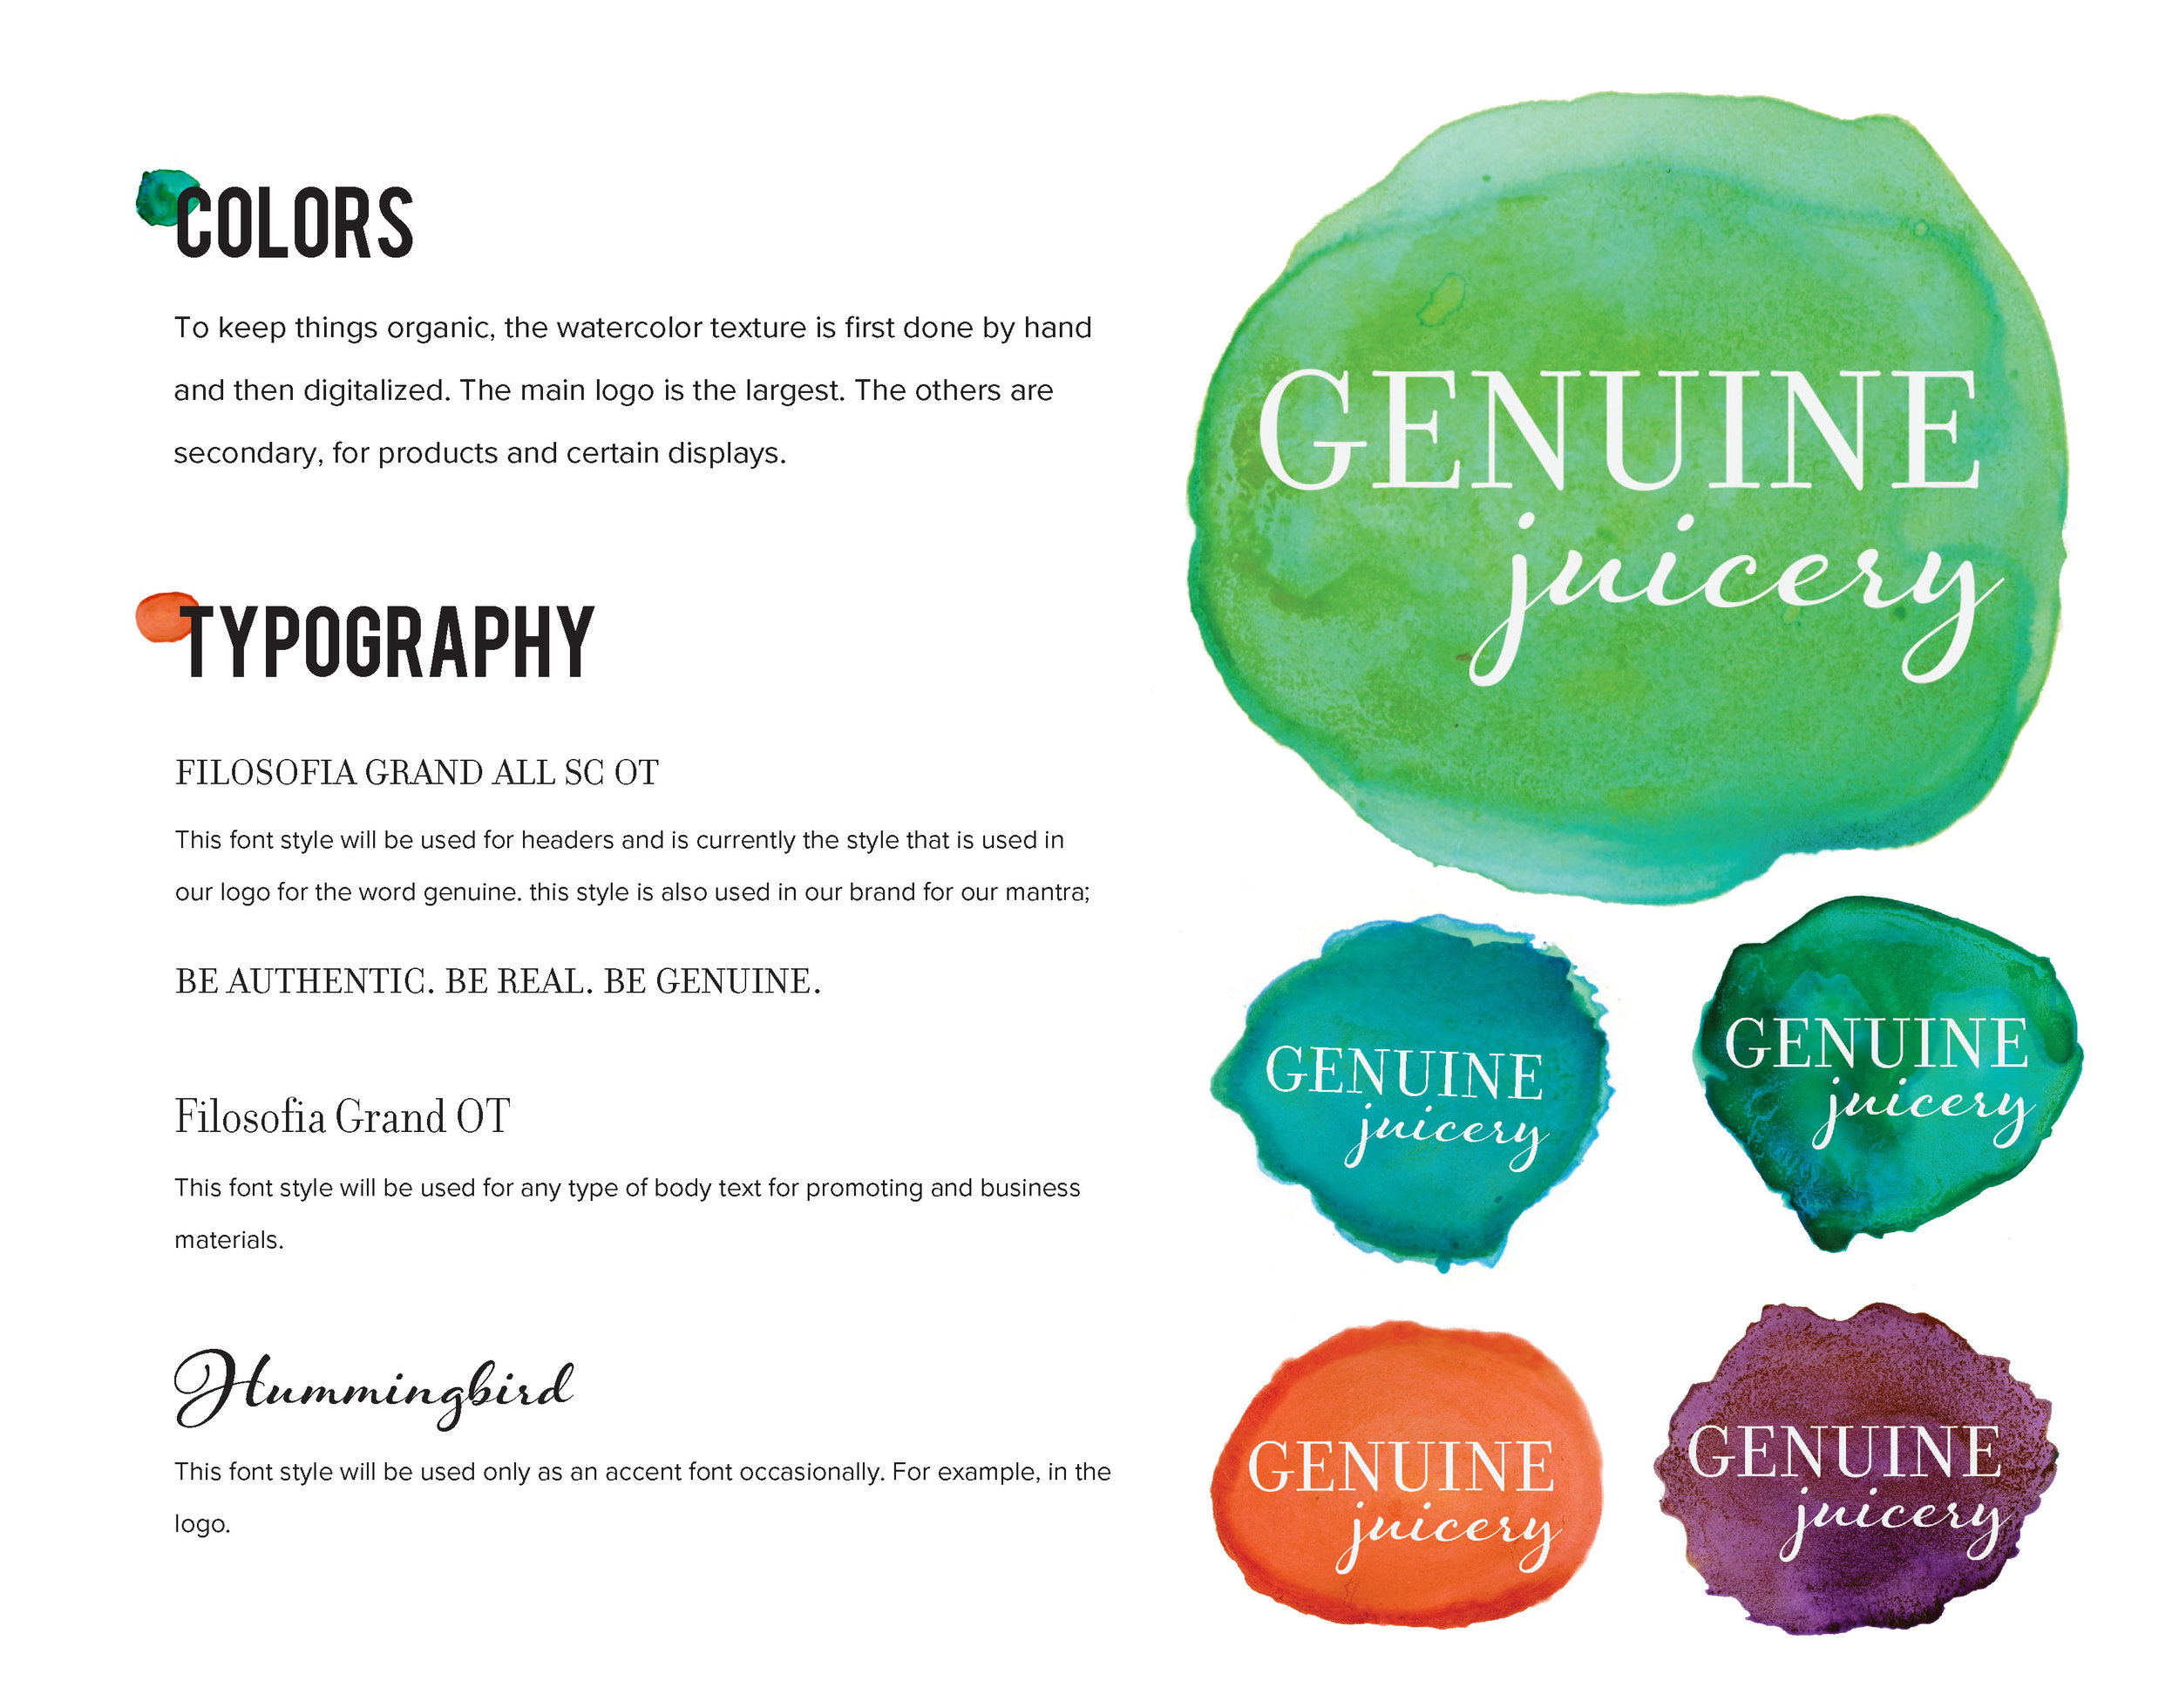 genuine juicery branding book updated_Page_6.jpg